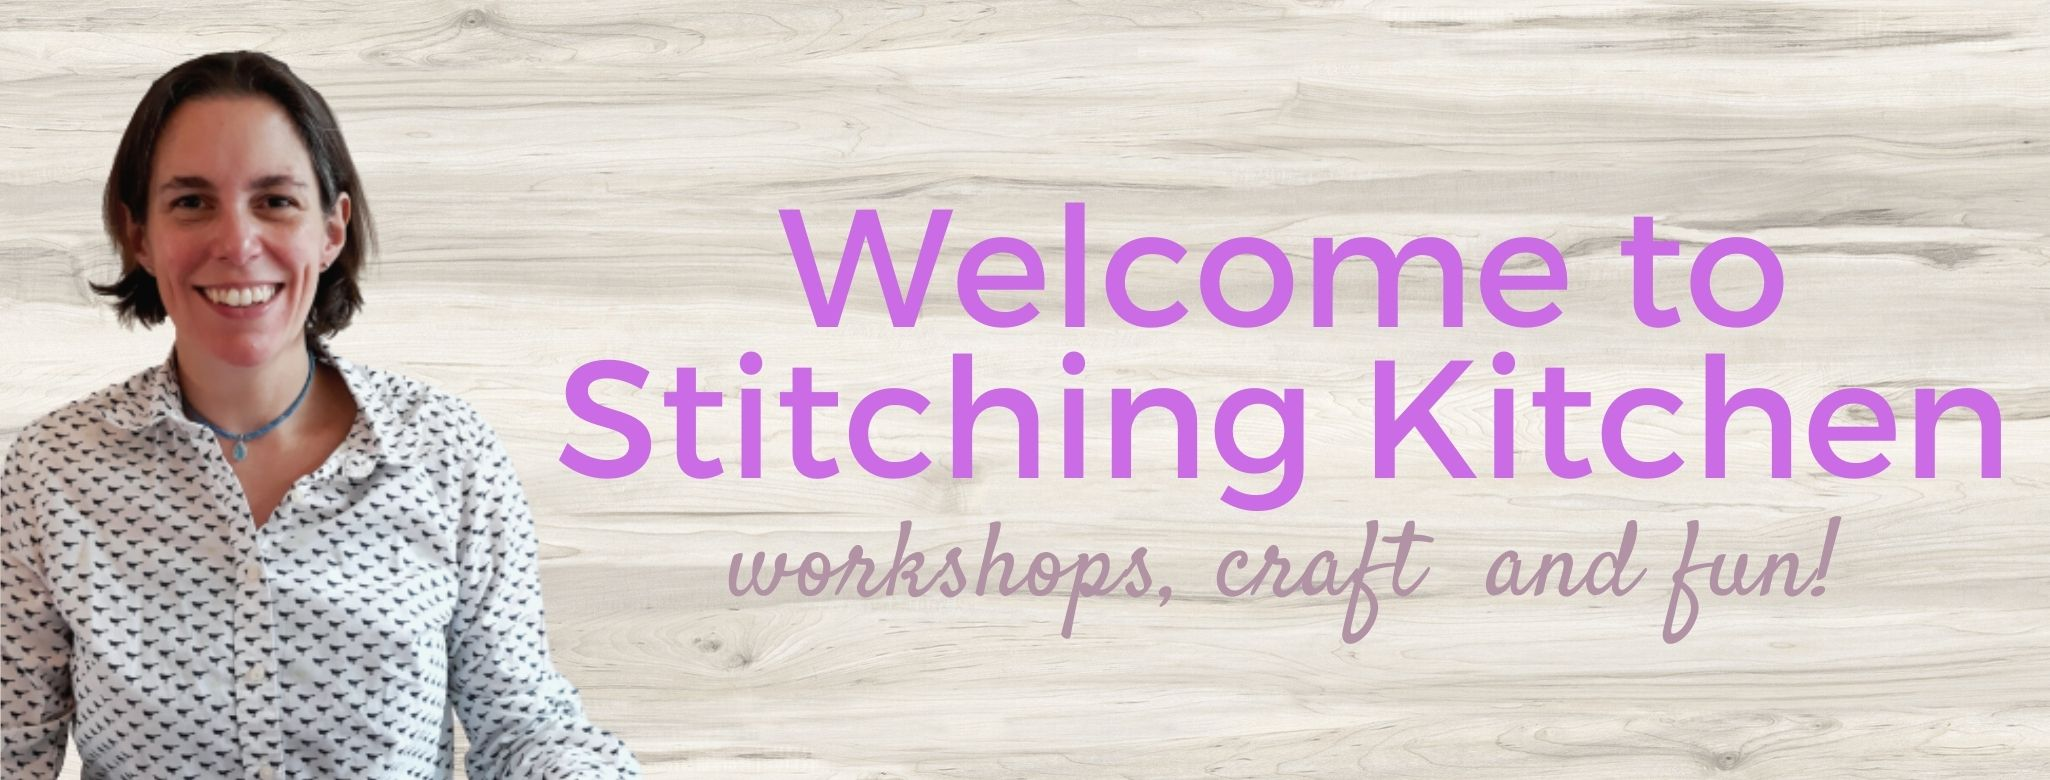 Welcome to Stitching Kitchen; the best place for craft, workshops and fun!